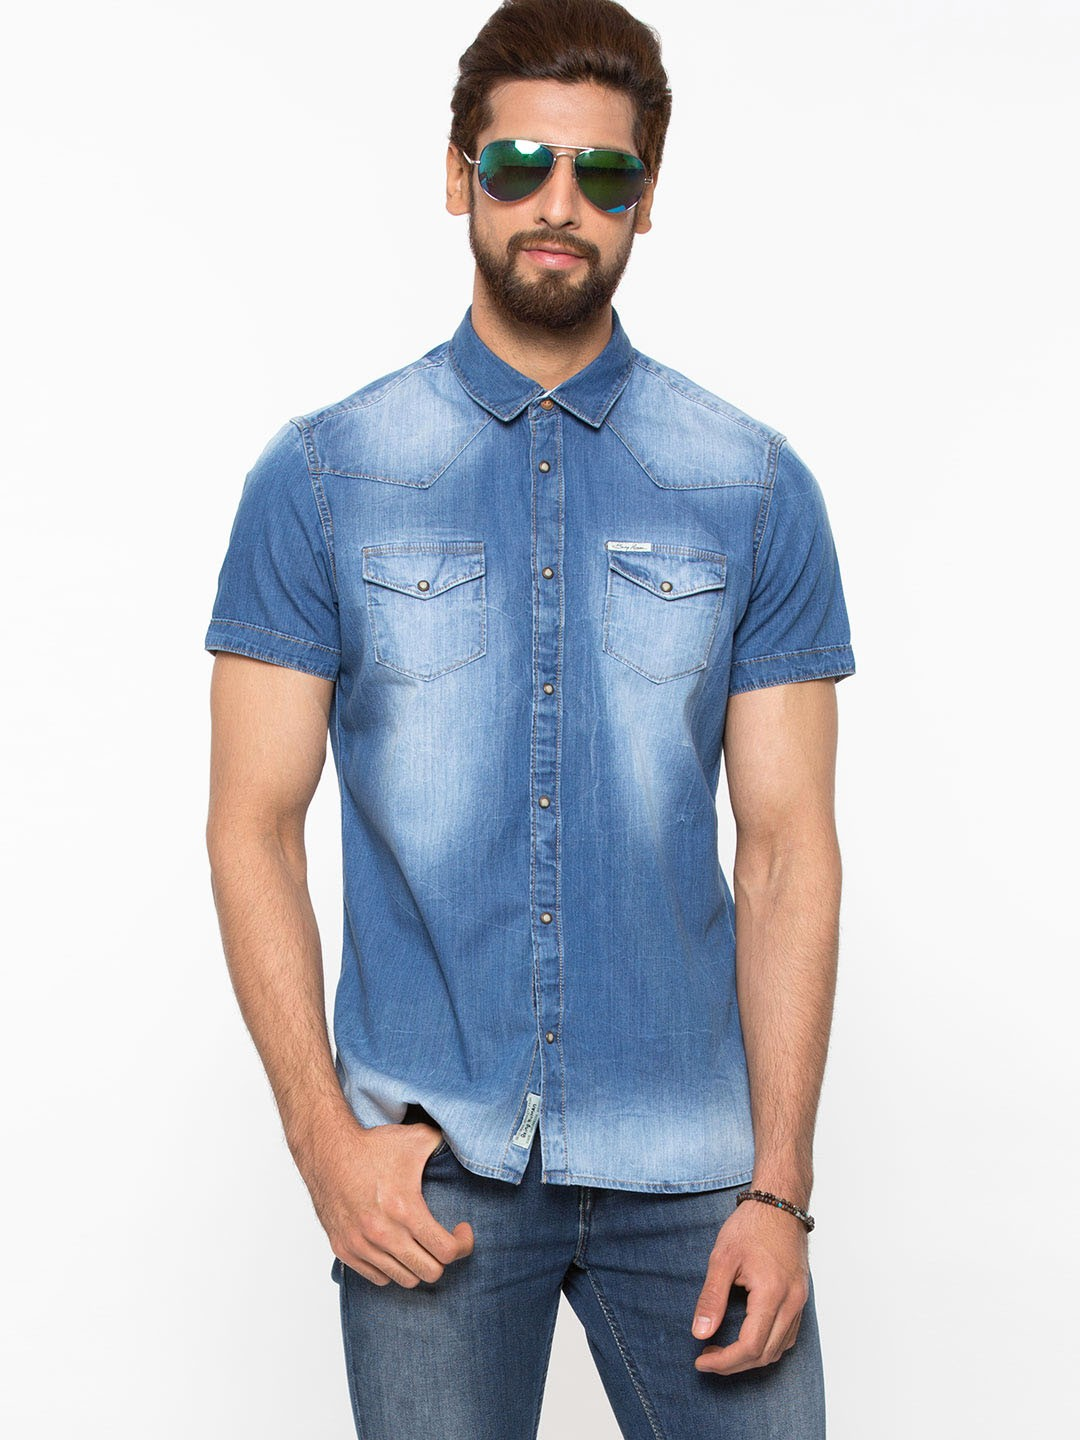 Buy BEING HUMAN Half Sleeve Faded Denim Shirt For Men - Menu0026#39;s Blue Casual Shirts Online in India